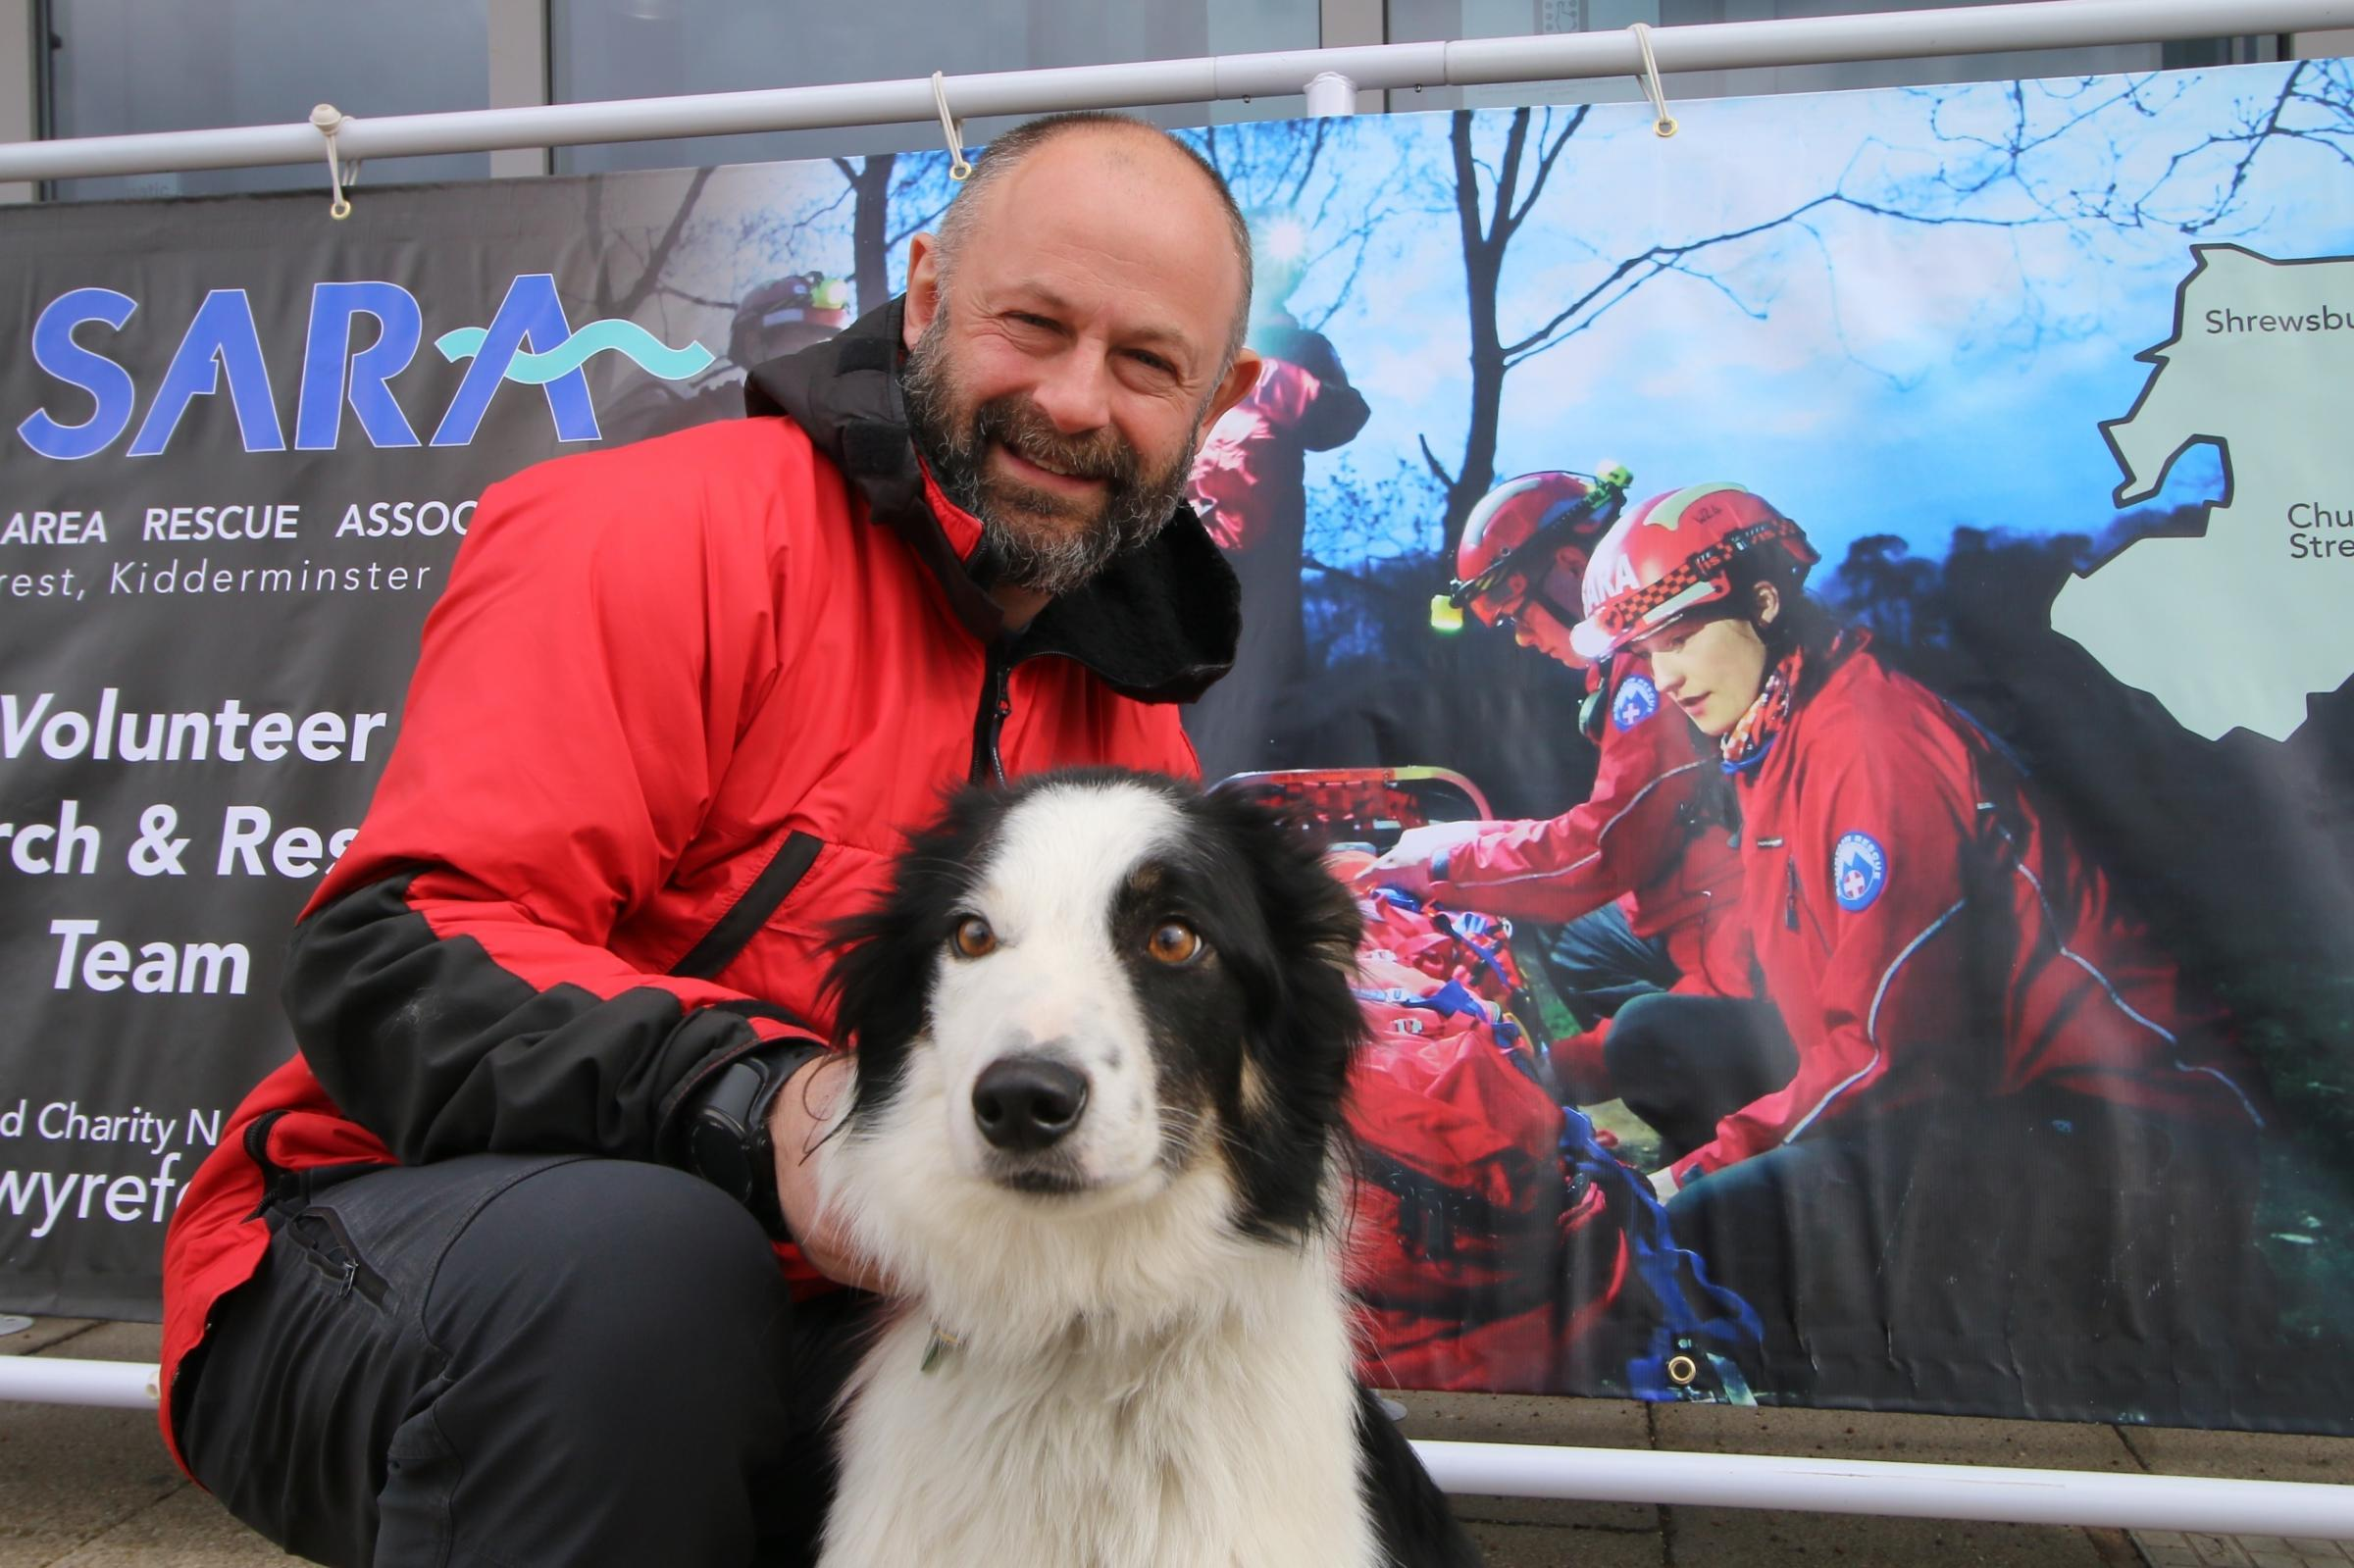 Dyno, pictured with Matthew, has gone from rescued to rescuer